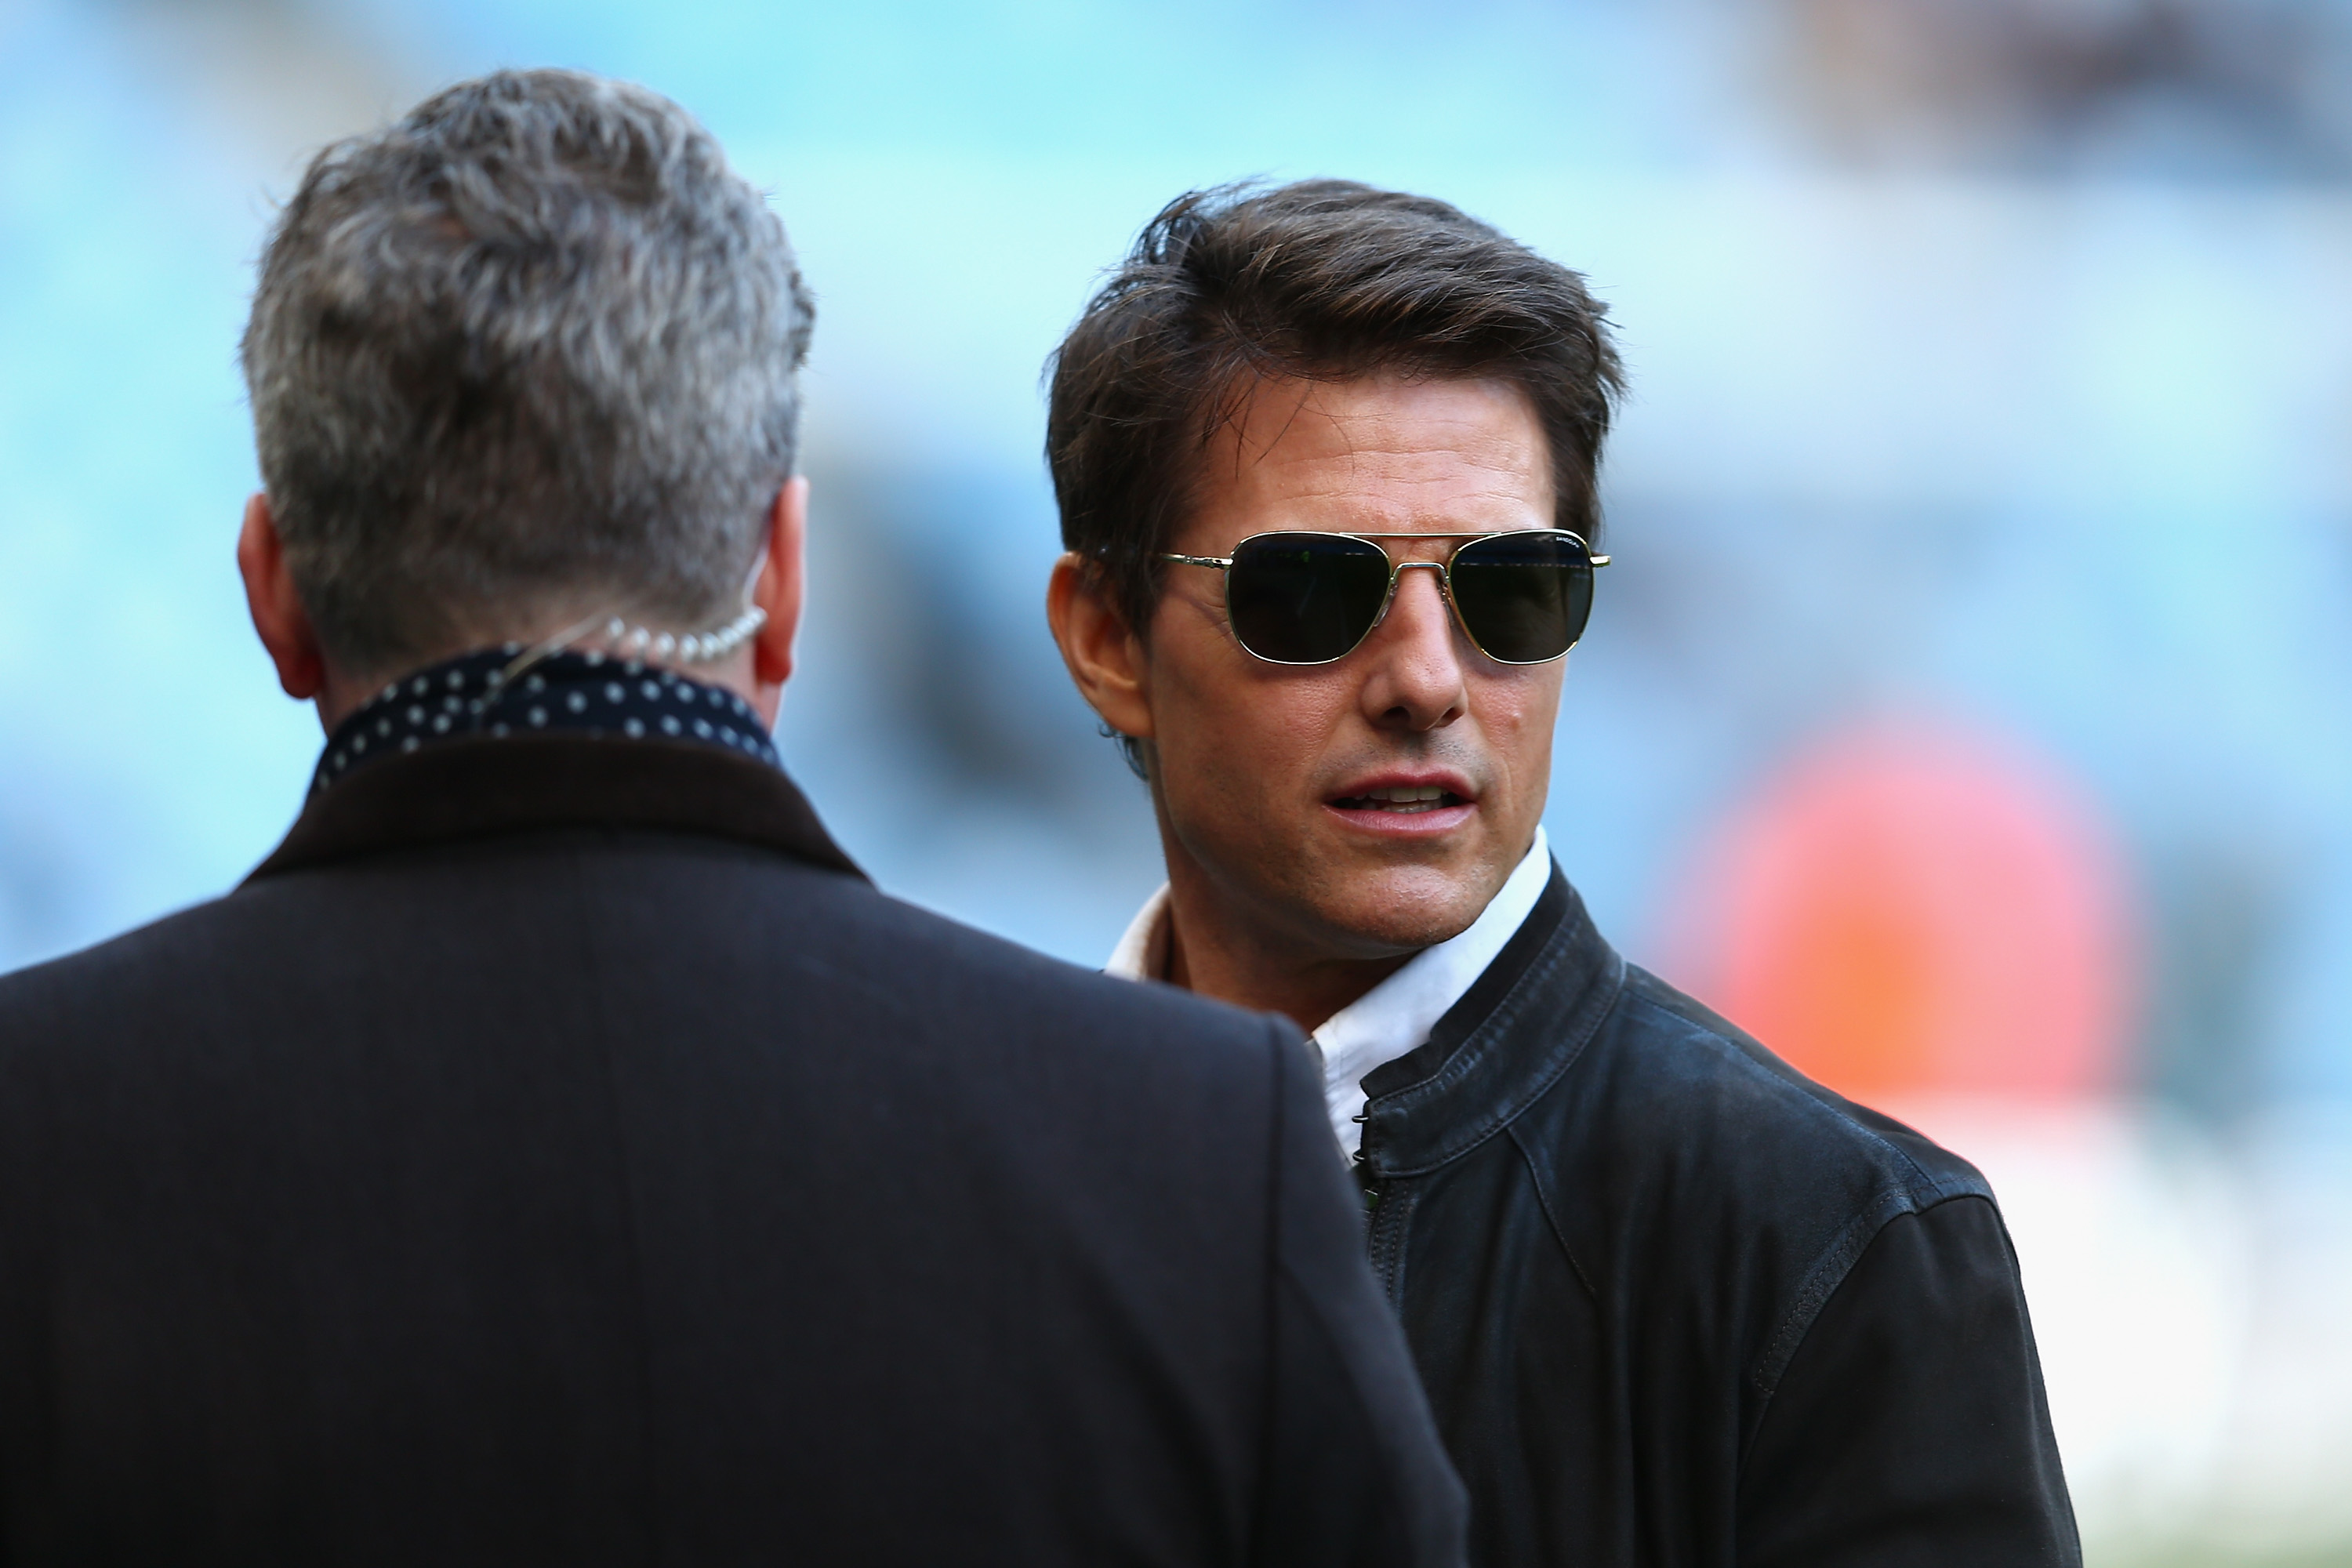 Tom Cruise sparks 'Top Gun' feud between US Air Force, Navy